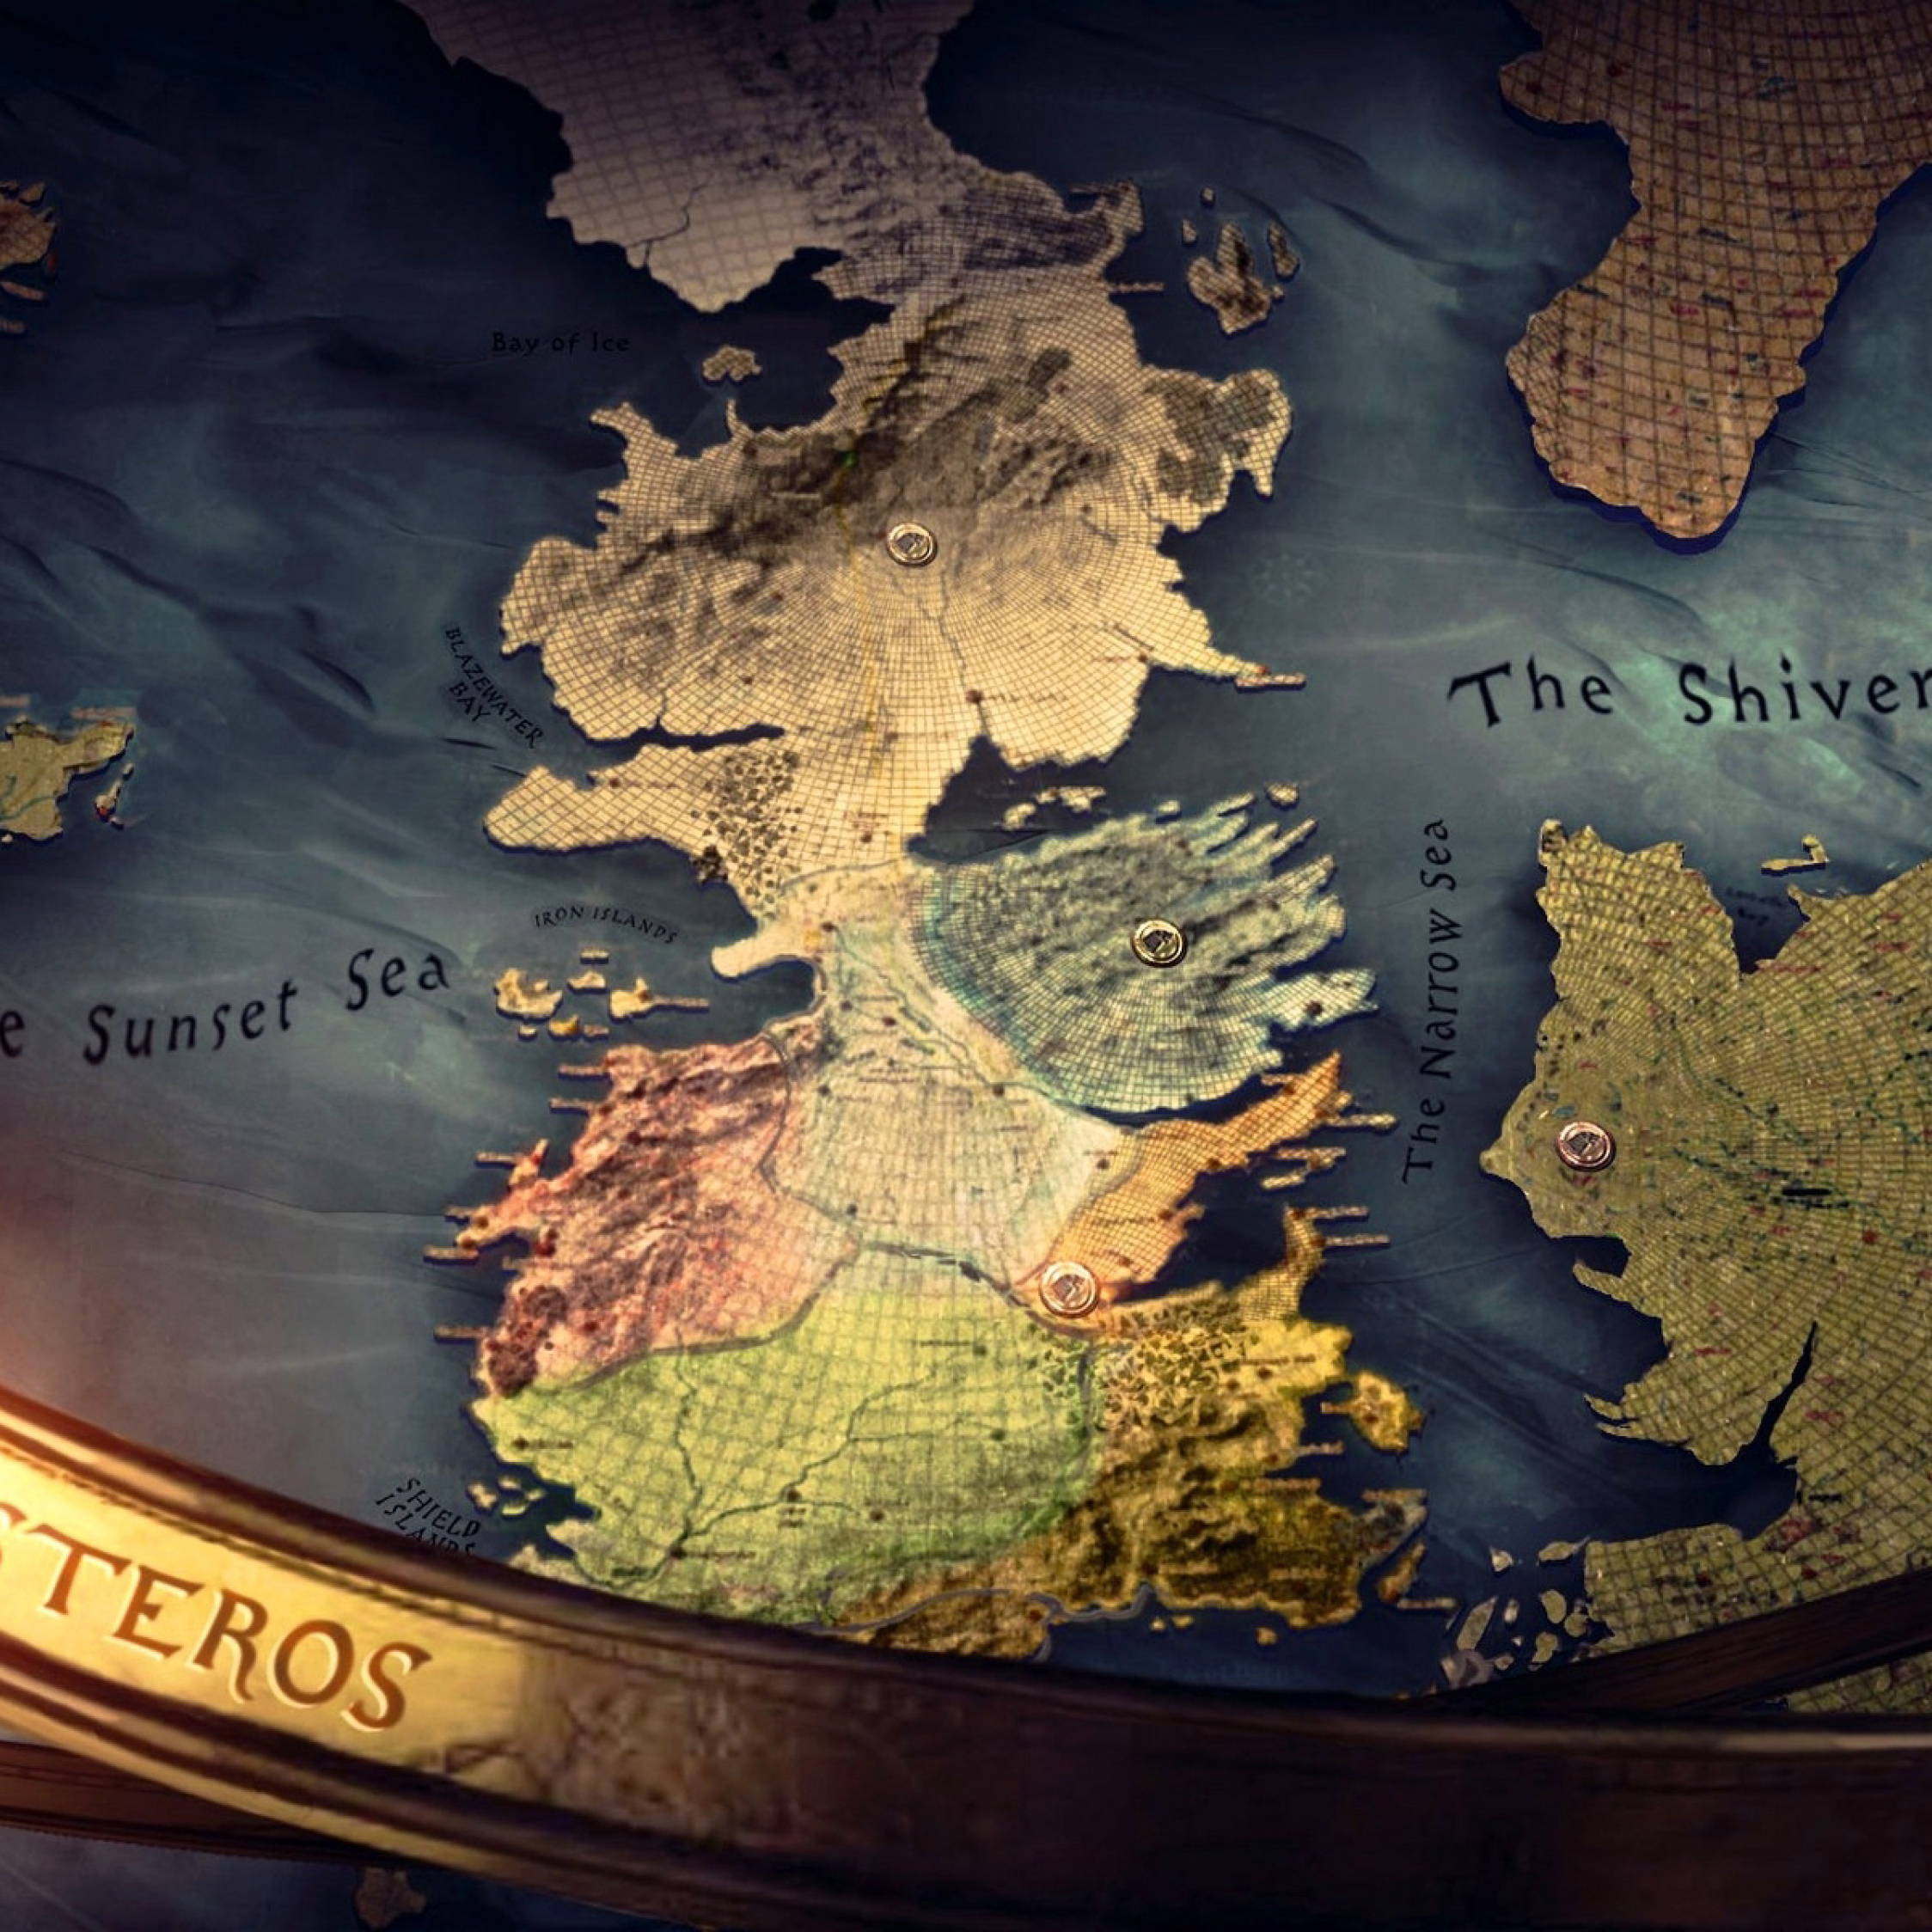 Game Of Thrones Throne Wallpaper: Westeros Map Game Of Thrones Tv Show Photoshoot, Full HD